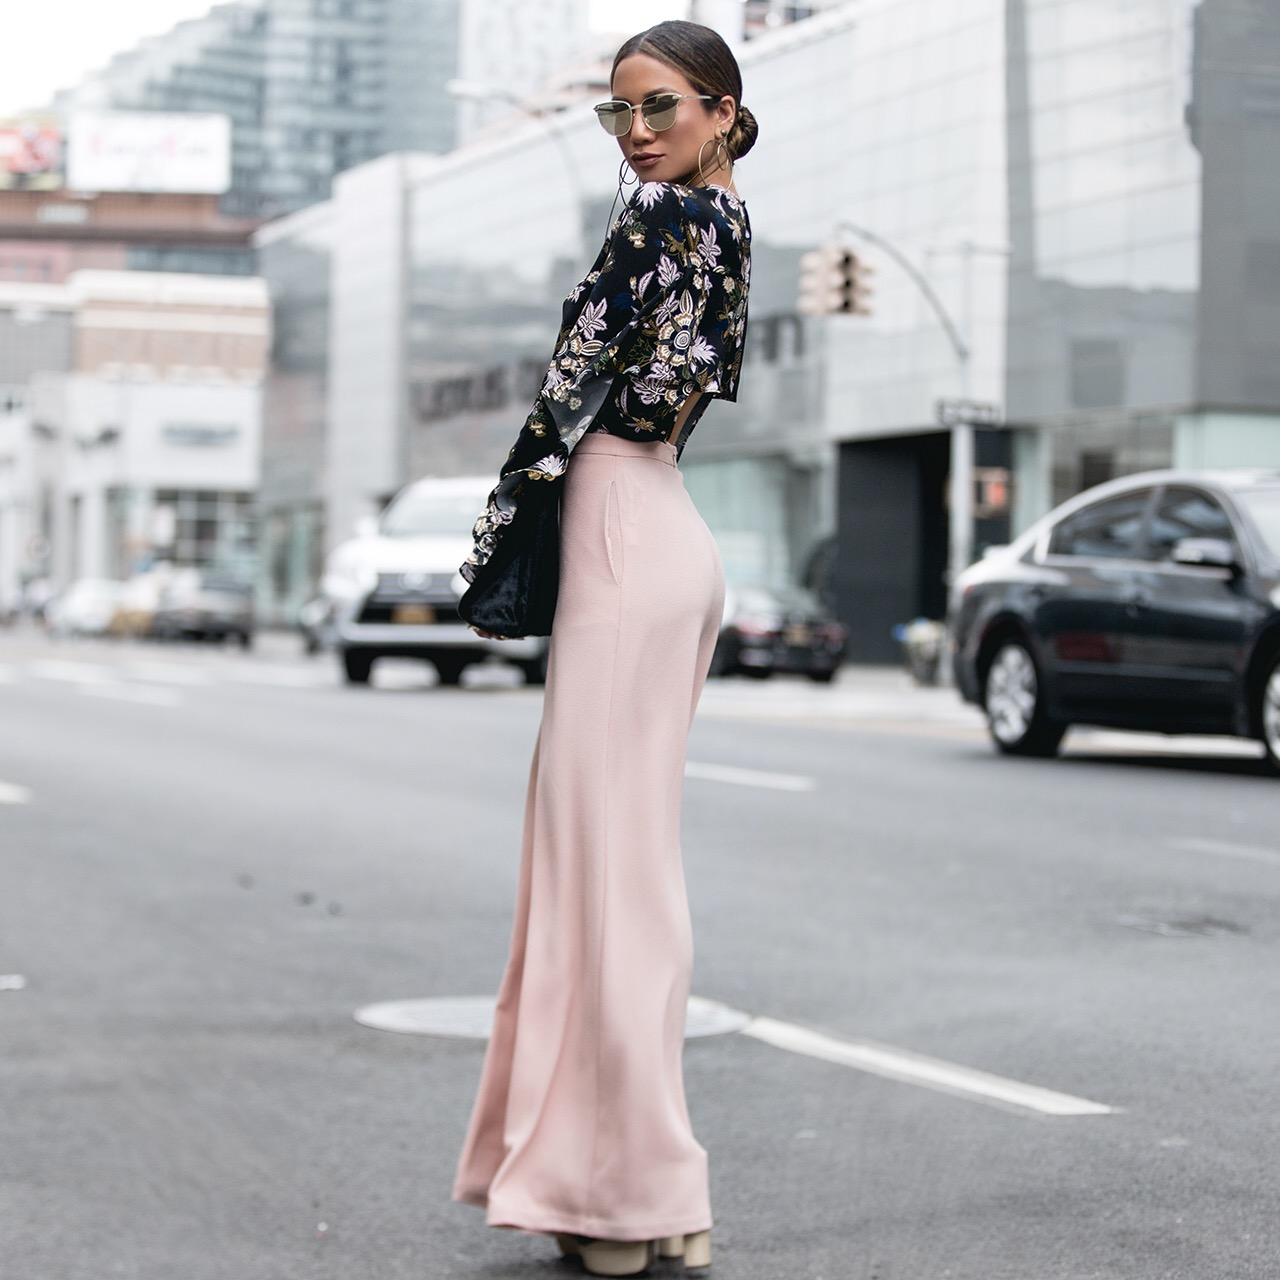 Jessi Malay wearing Zimmermann Trousers